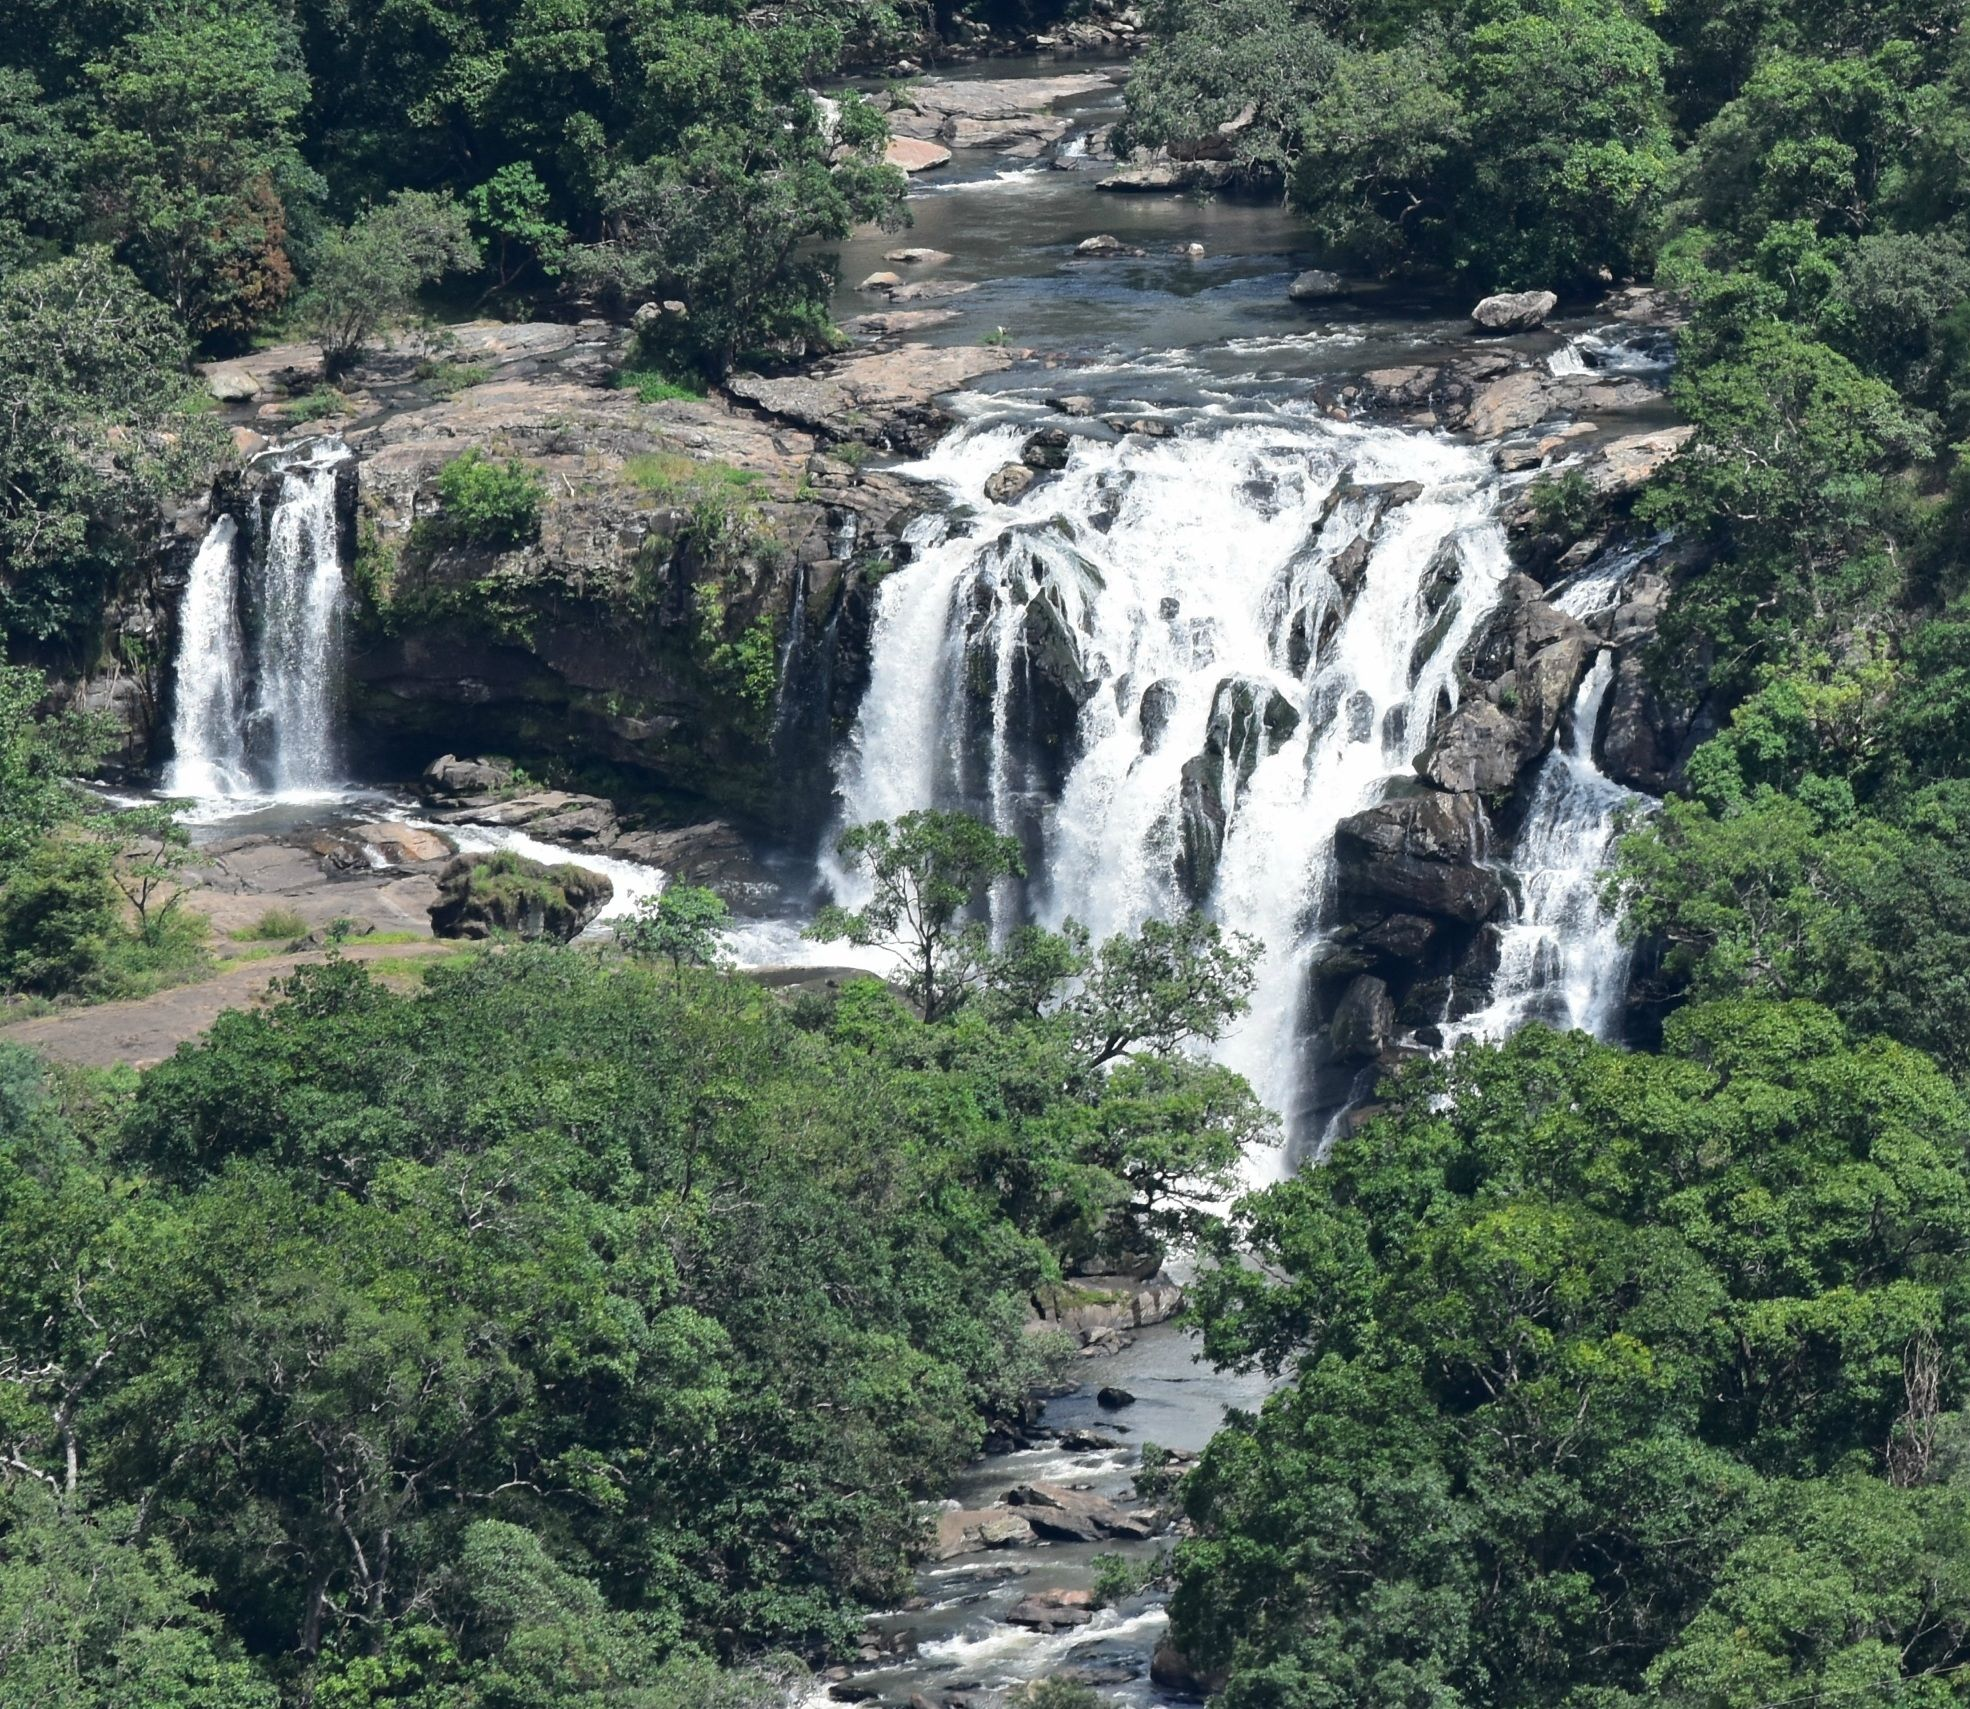 Thoovanam Waterfalls- Hike to the waterfall through the